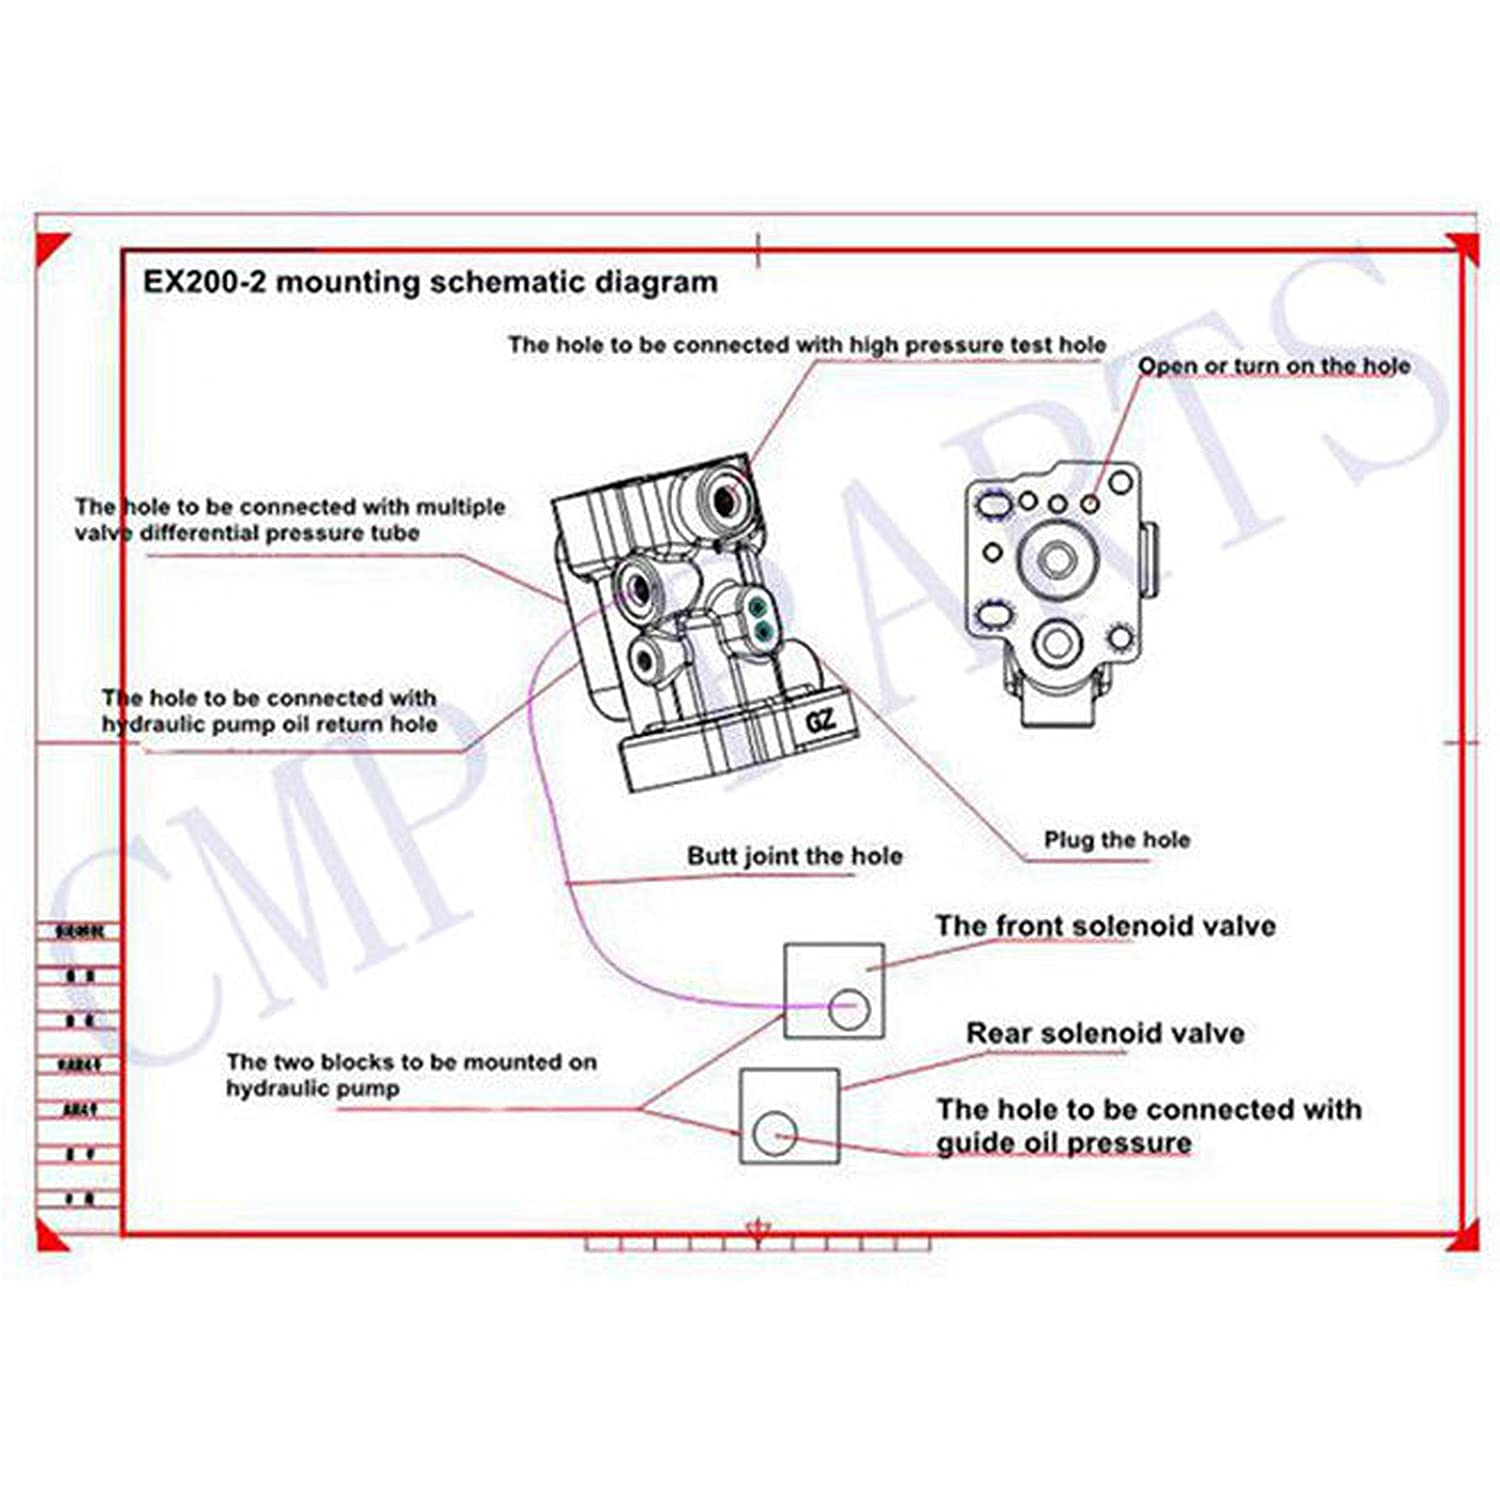 Hitachi Excavator Hydraulic Circuit Diagram Trusted Wiring Diagrams John Deere 120 Amazon Com Ex200 2 3 Conversion Kit Sinocmp Rh Trackhoe Track Adjustment